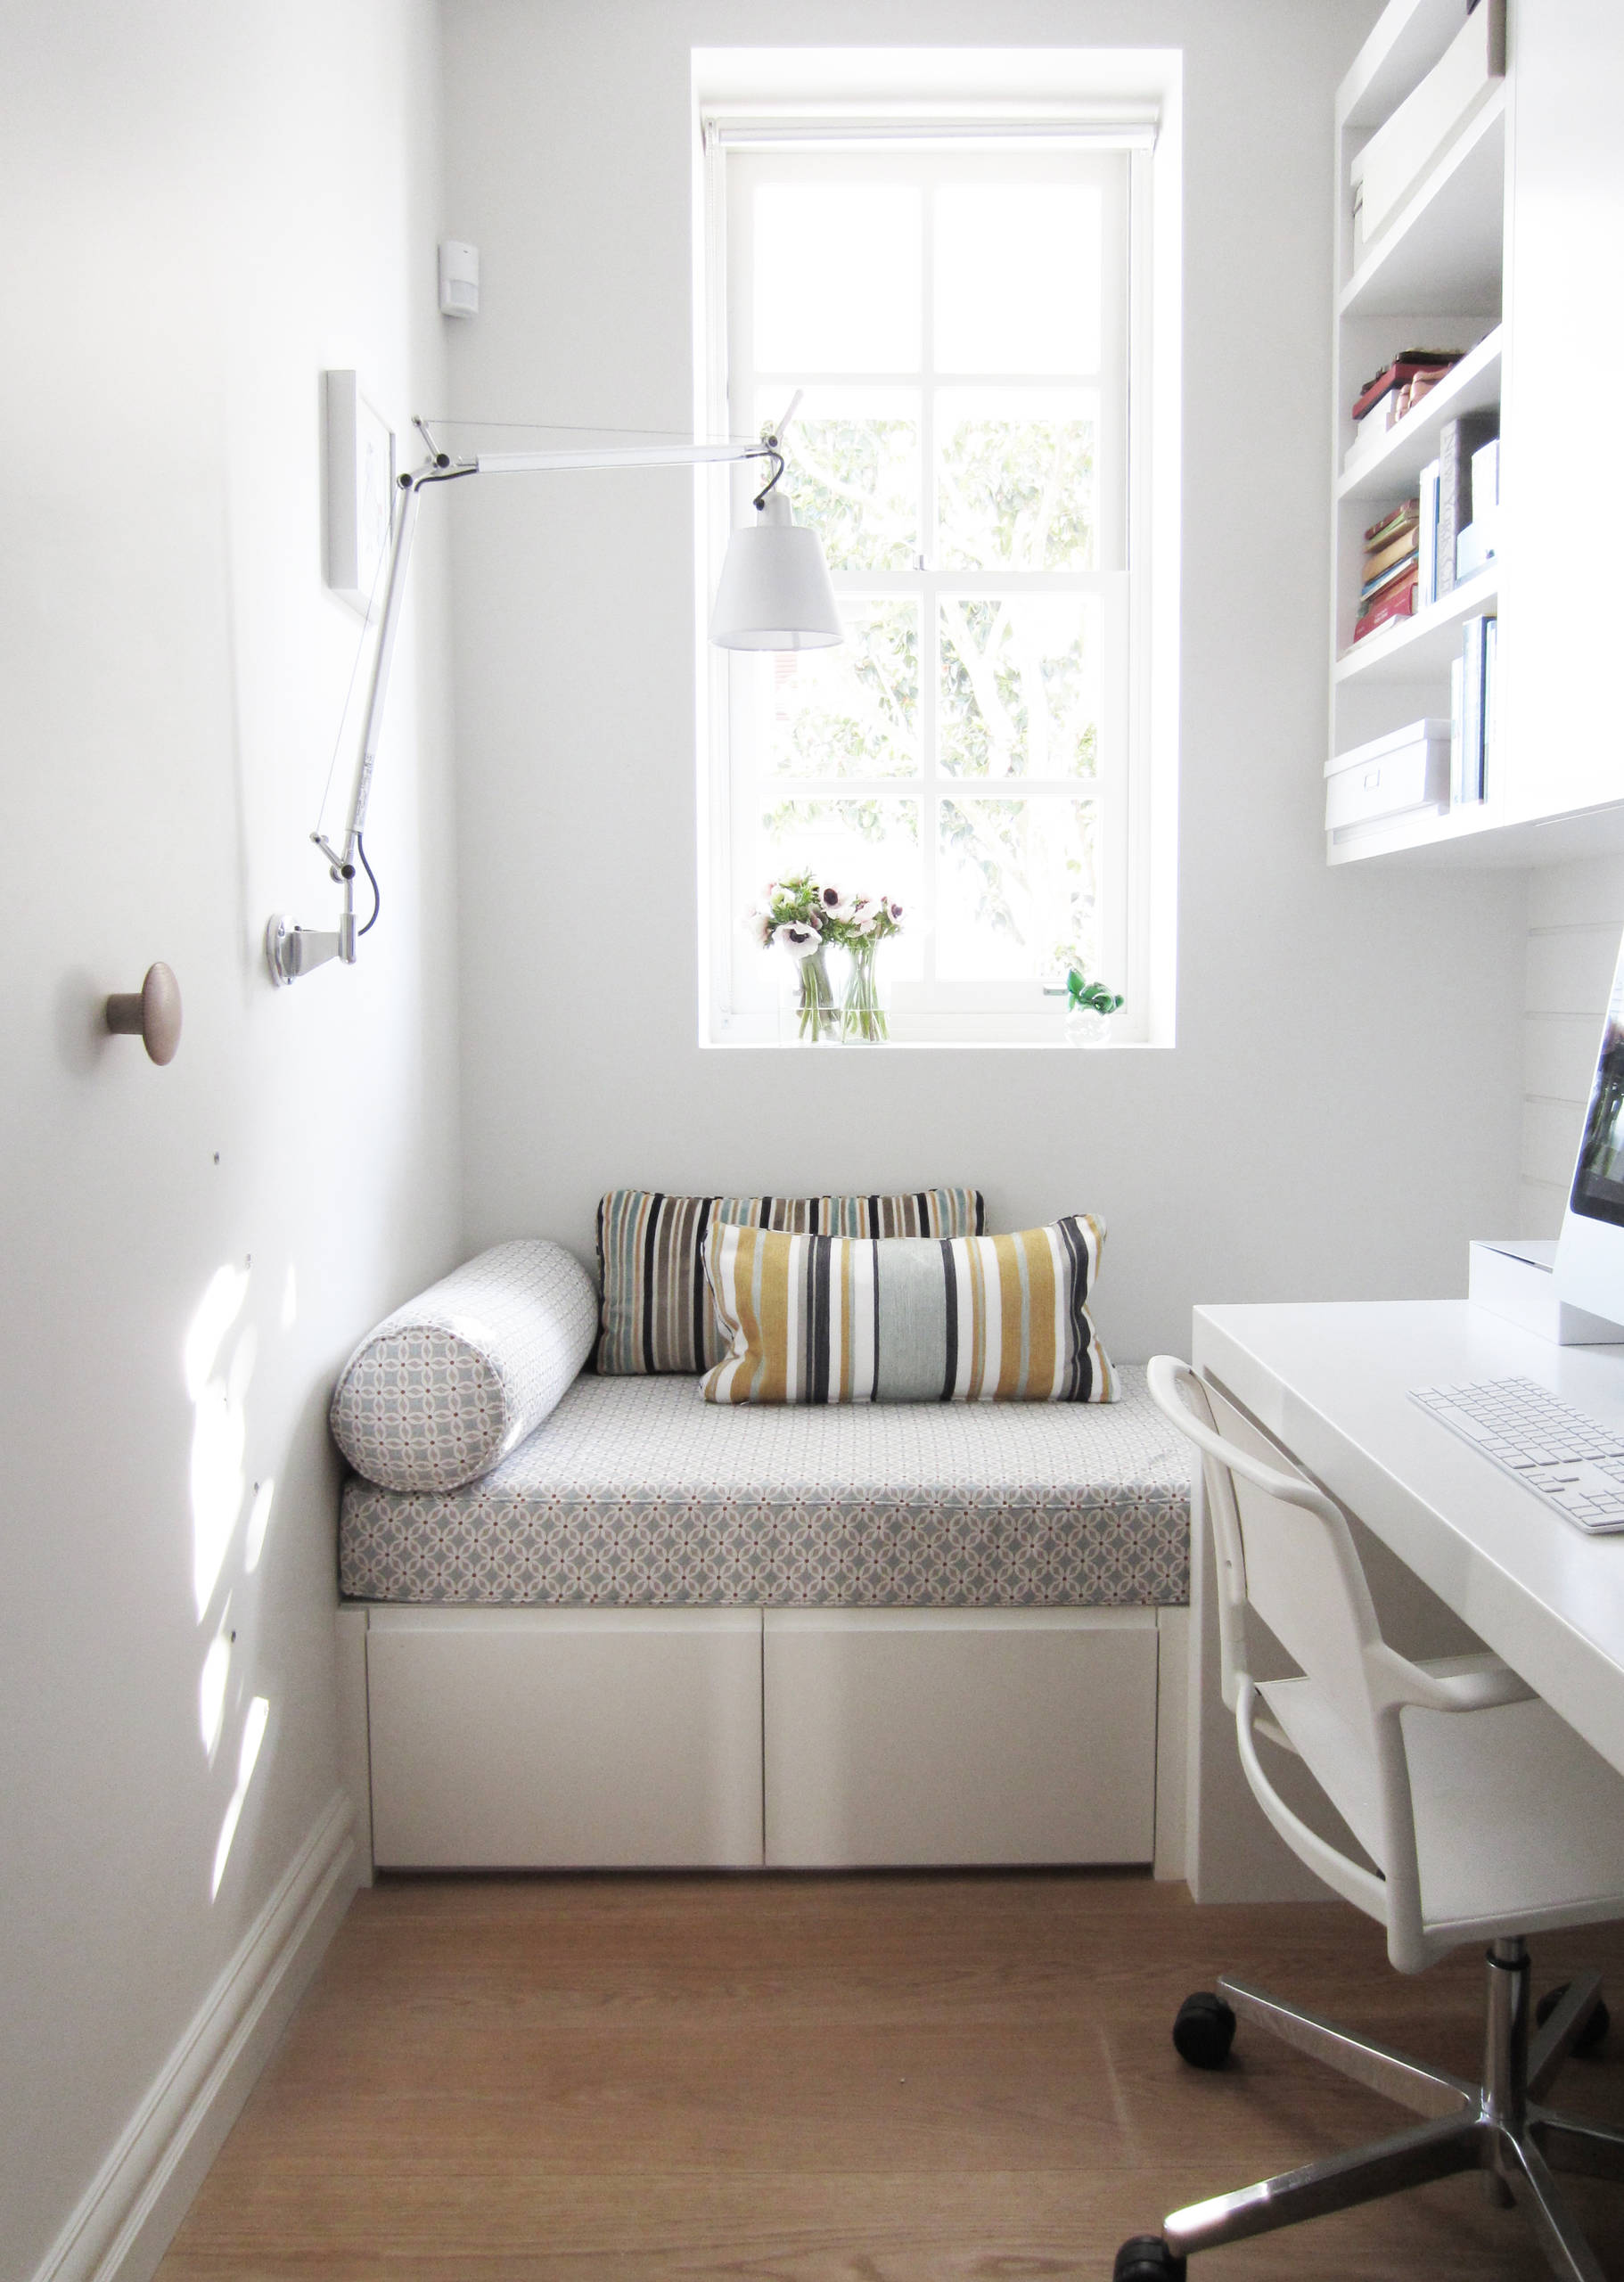 75 Beautiful Small White Home Office Pictures Ideas October 2020 Houzz